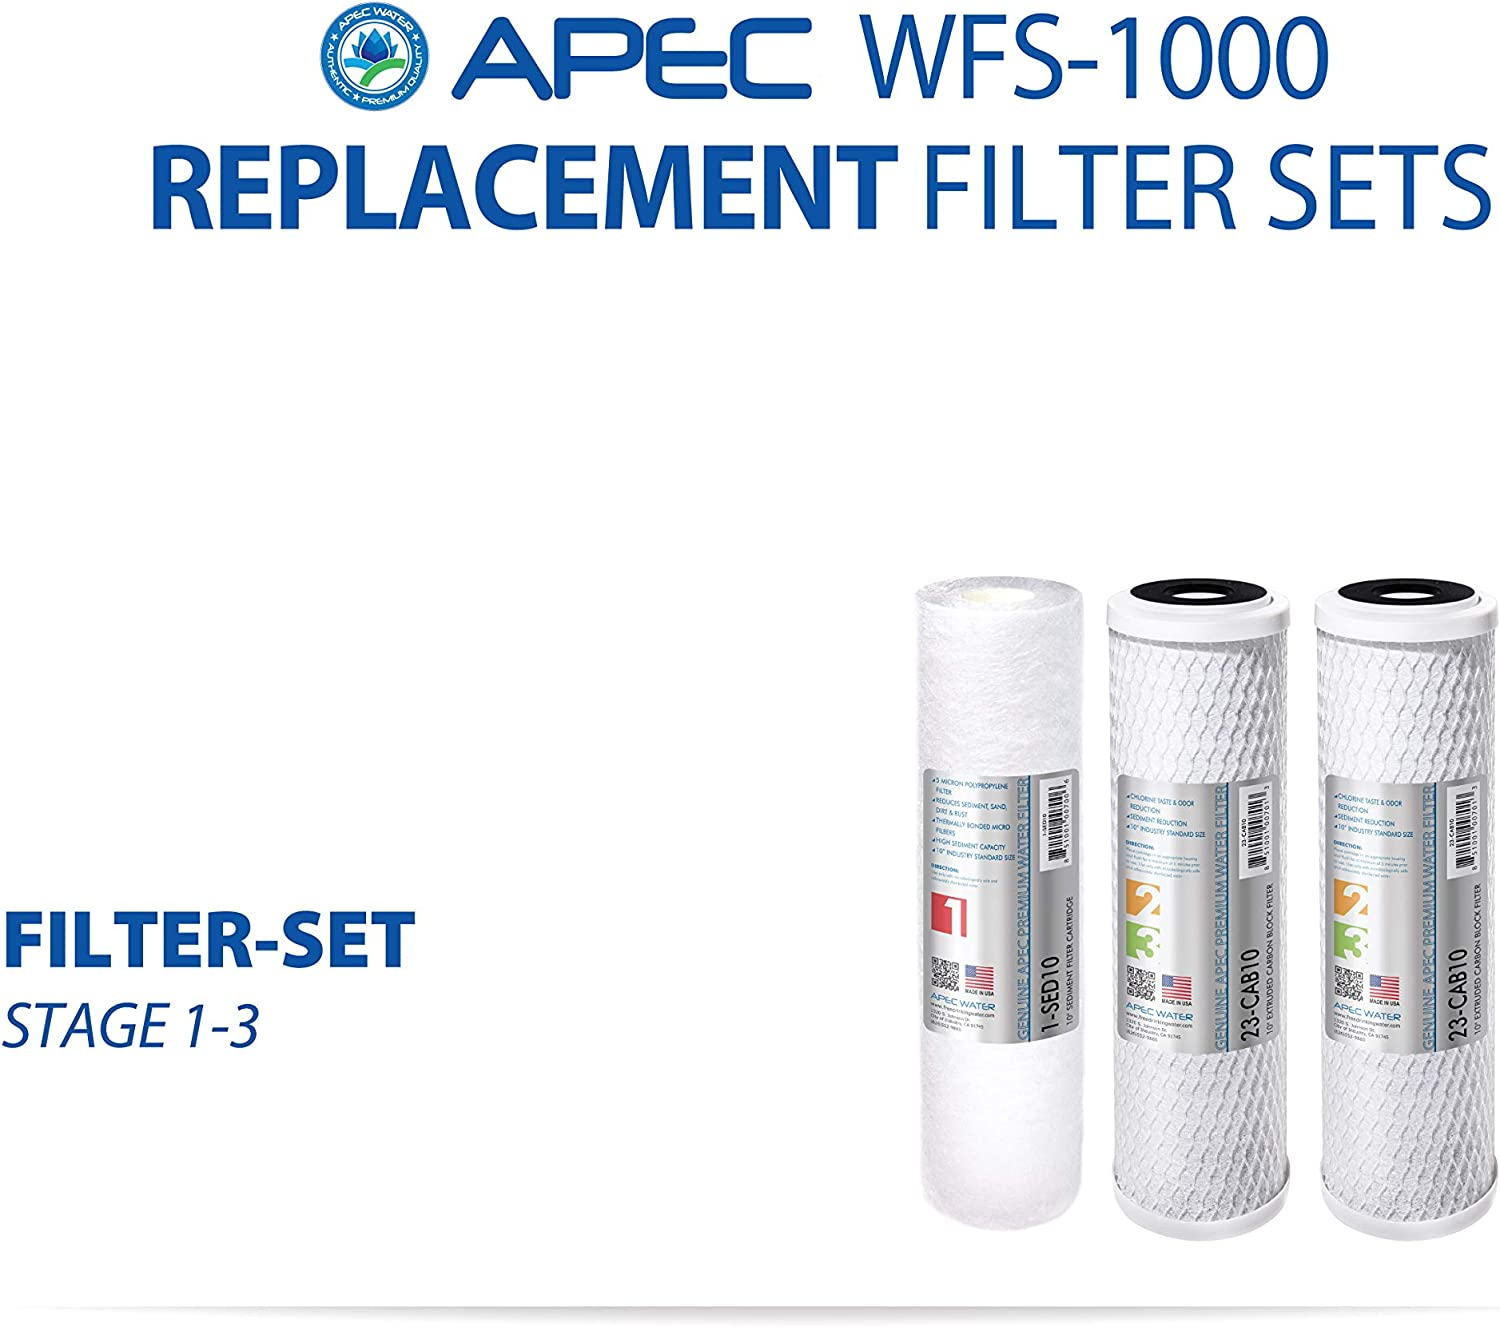 APEC WFS-1000 3 Stage Under-Sink Water Filter replacement filters